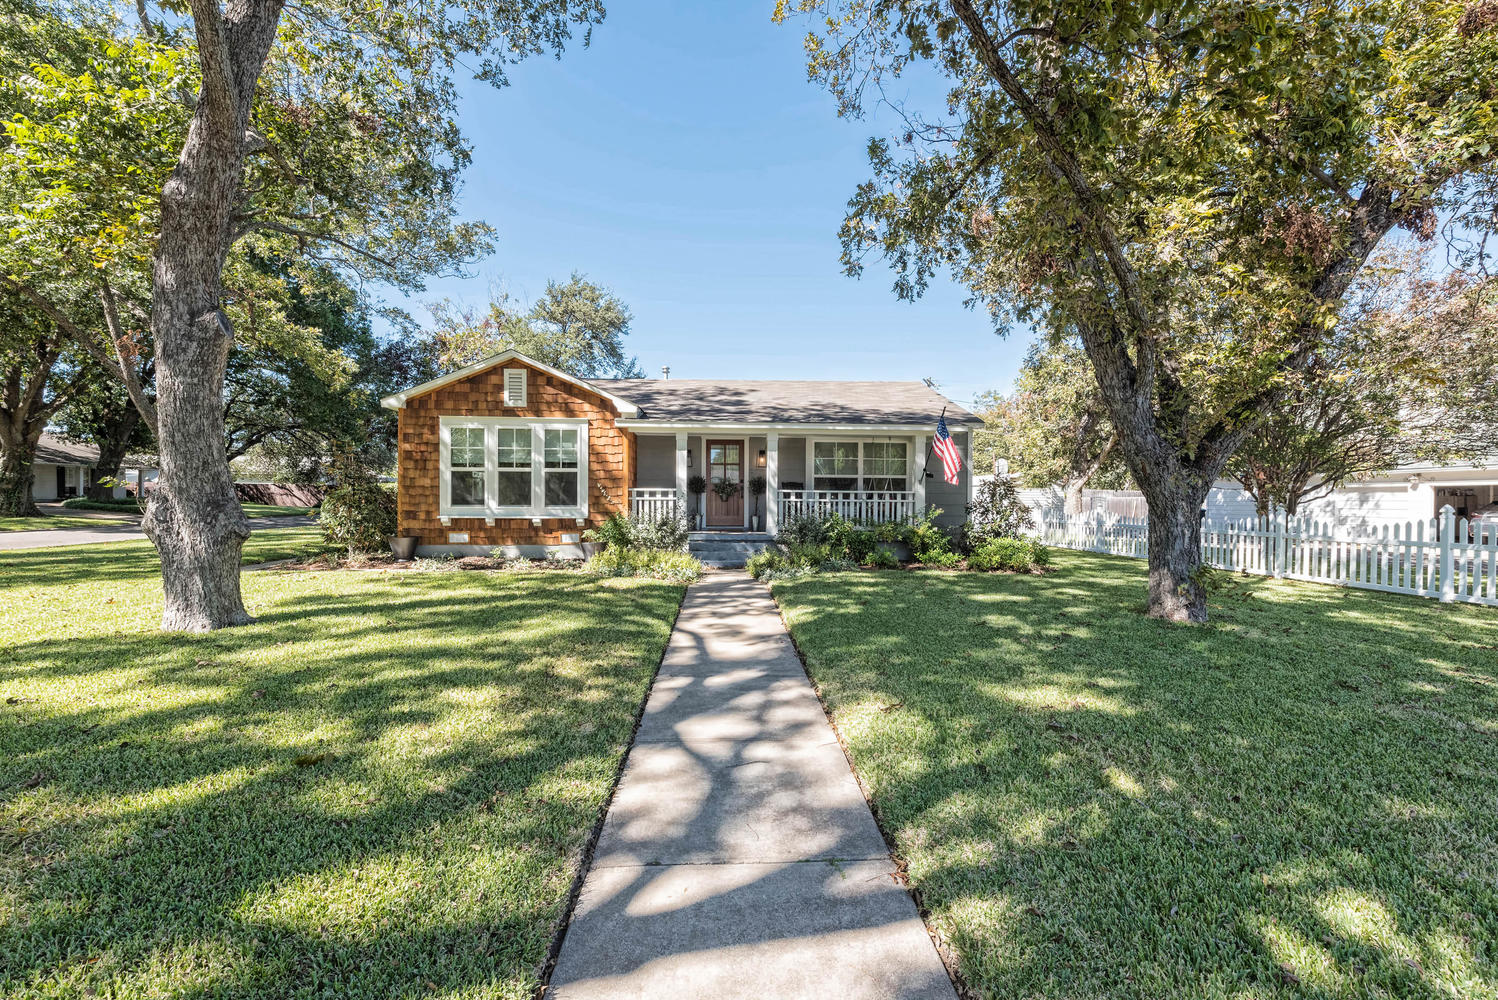 Fixer Upper home entrance with front lawn and small porch